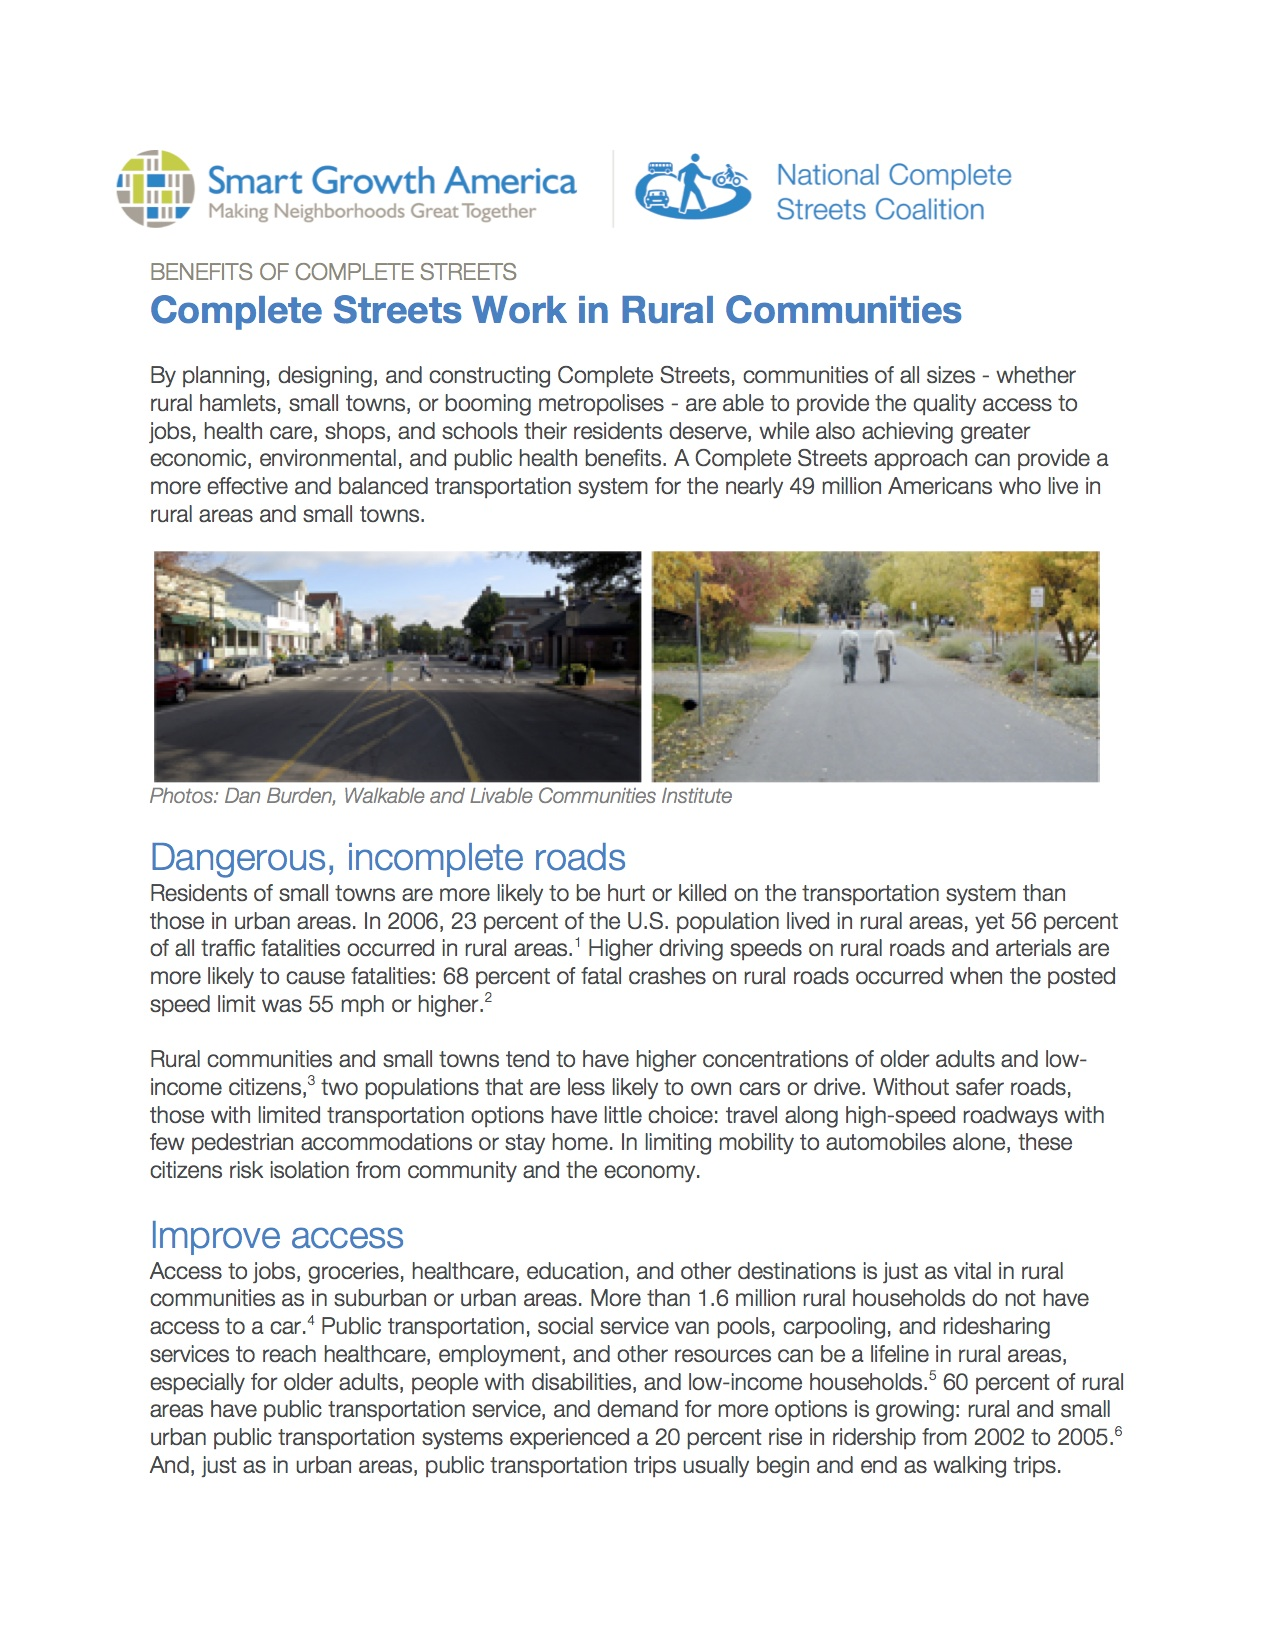 Complete Streets: Rural Areas and Small Towns